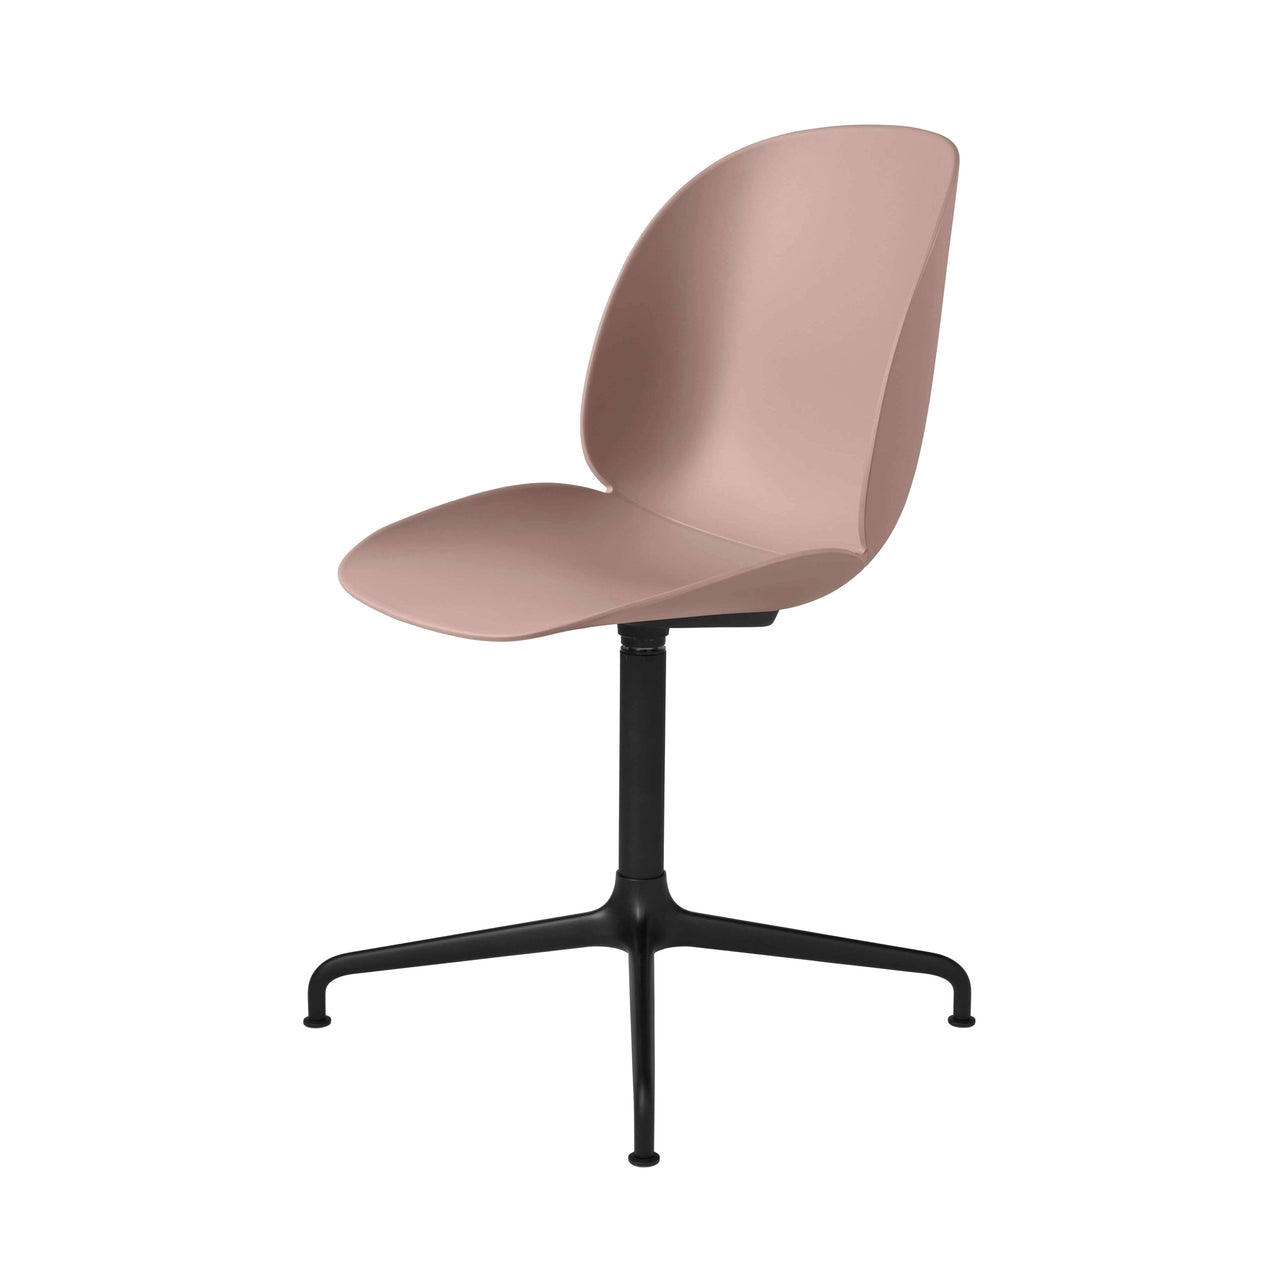 Beetle Meeting Chair: 4-Star Swivel Base: Sweet Pink + Black Matte Base + Plastic Glides